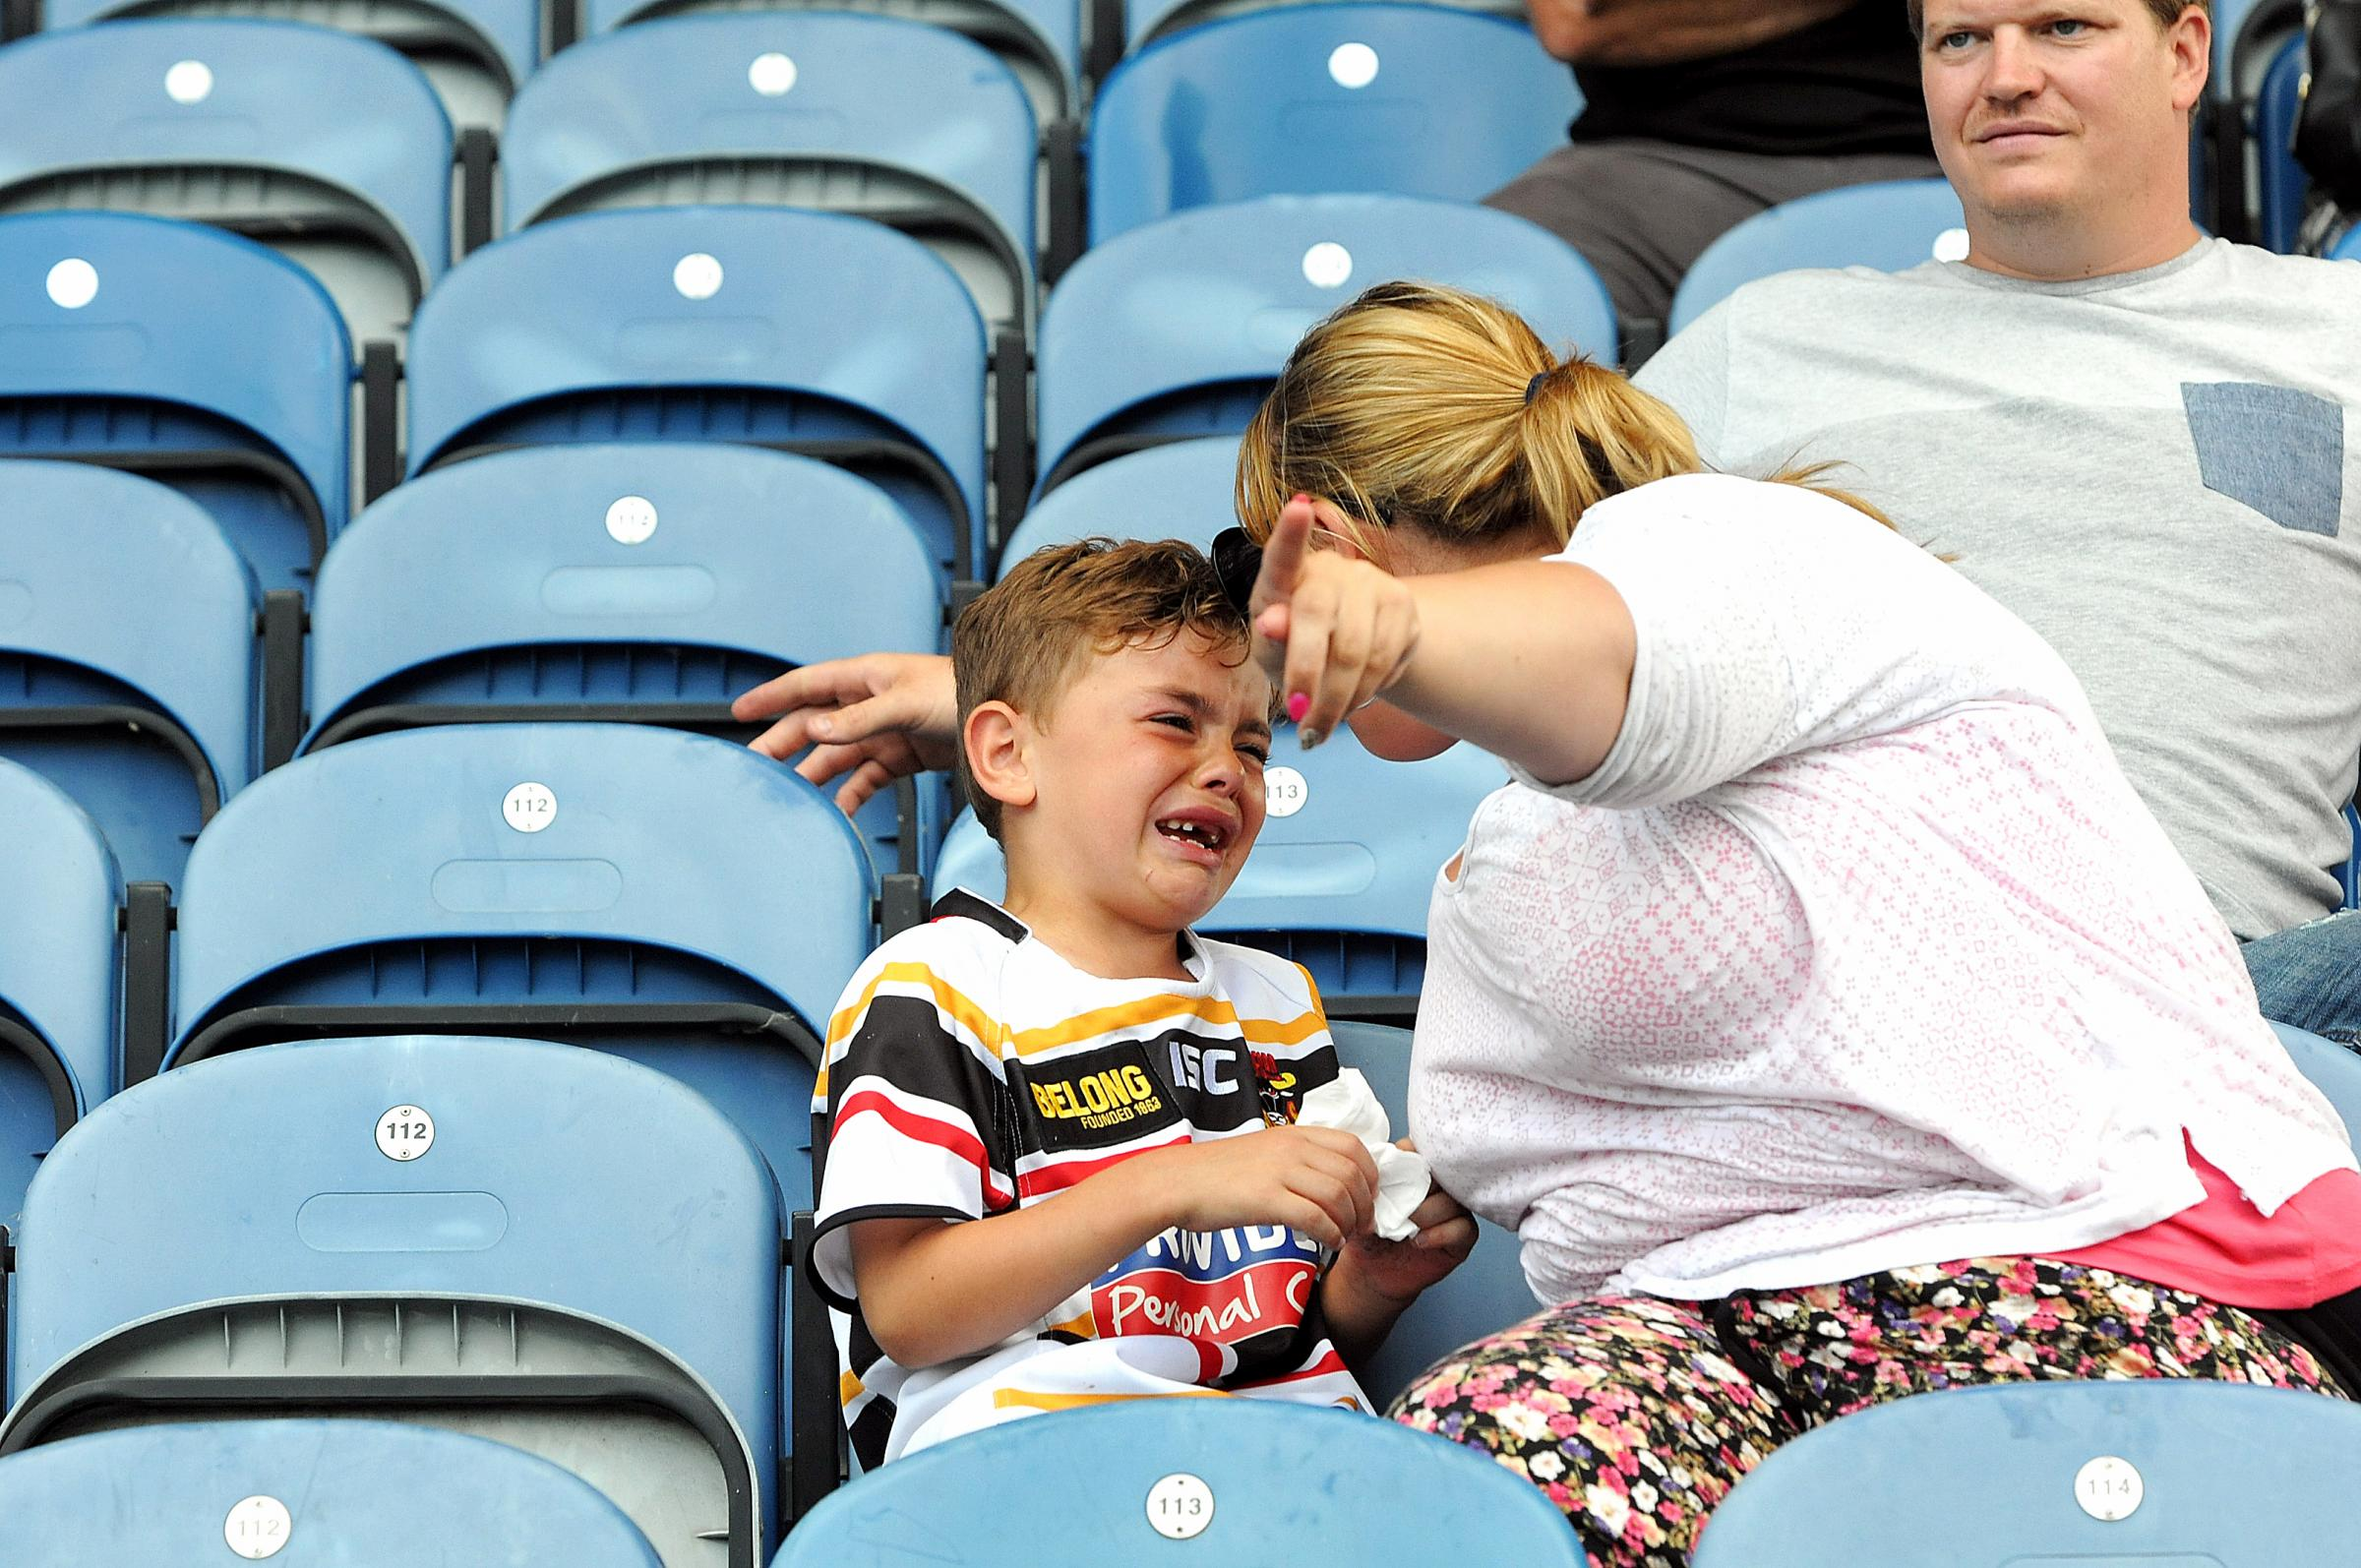 The picture that prompted an appeal to find the tearful young fan